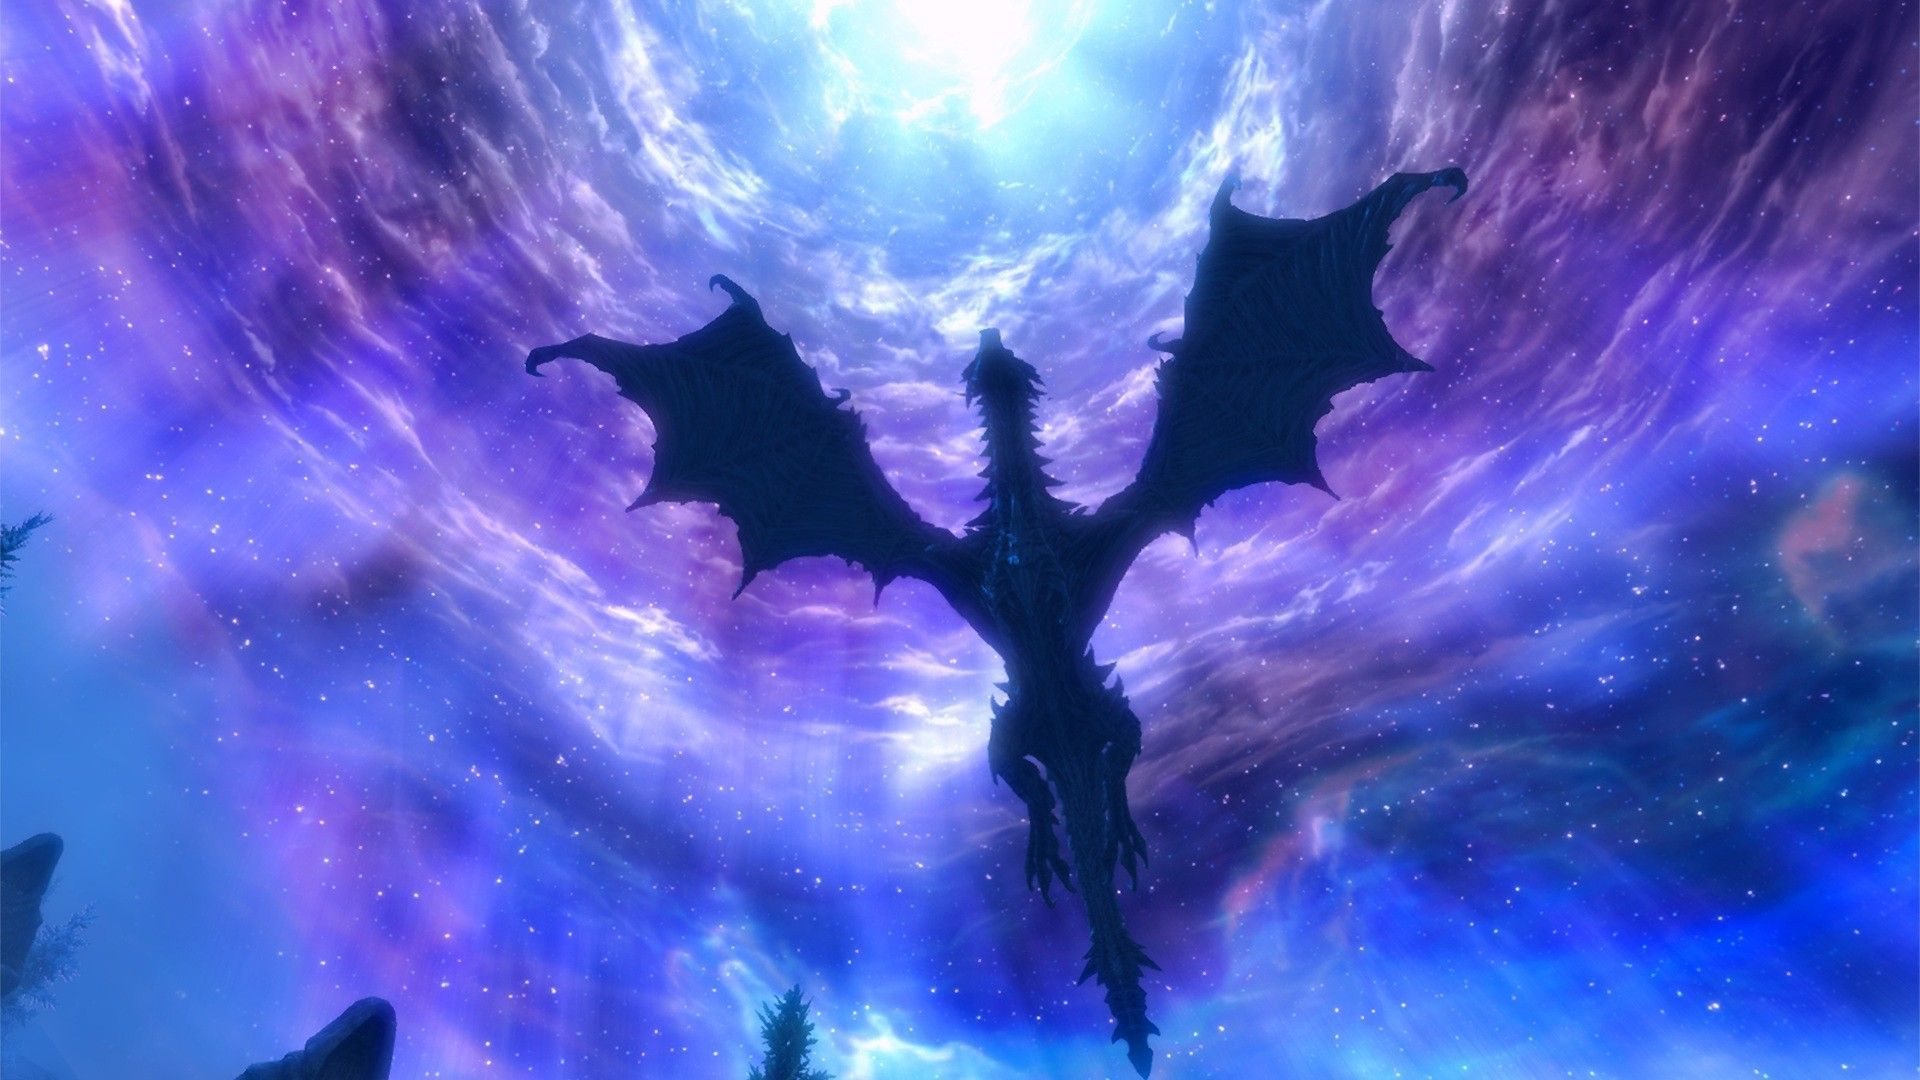 Purple Dragon Wallpapers Skyrim Wallpaper Skyrim Dragon Space Dragon